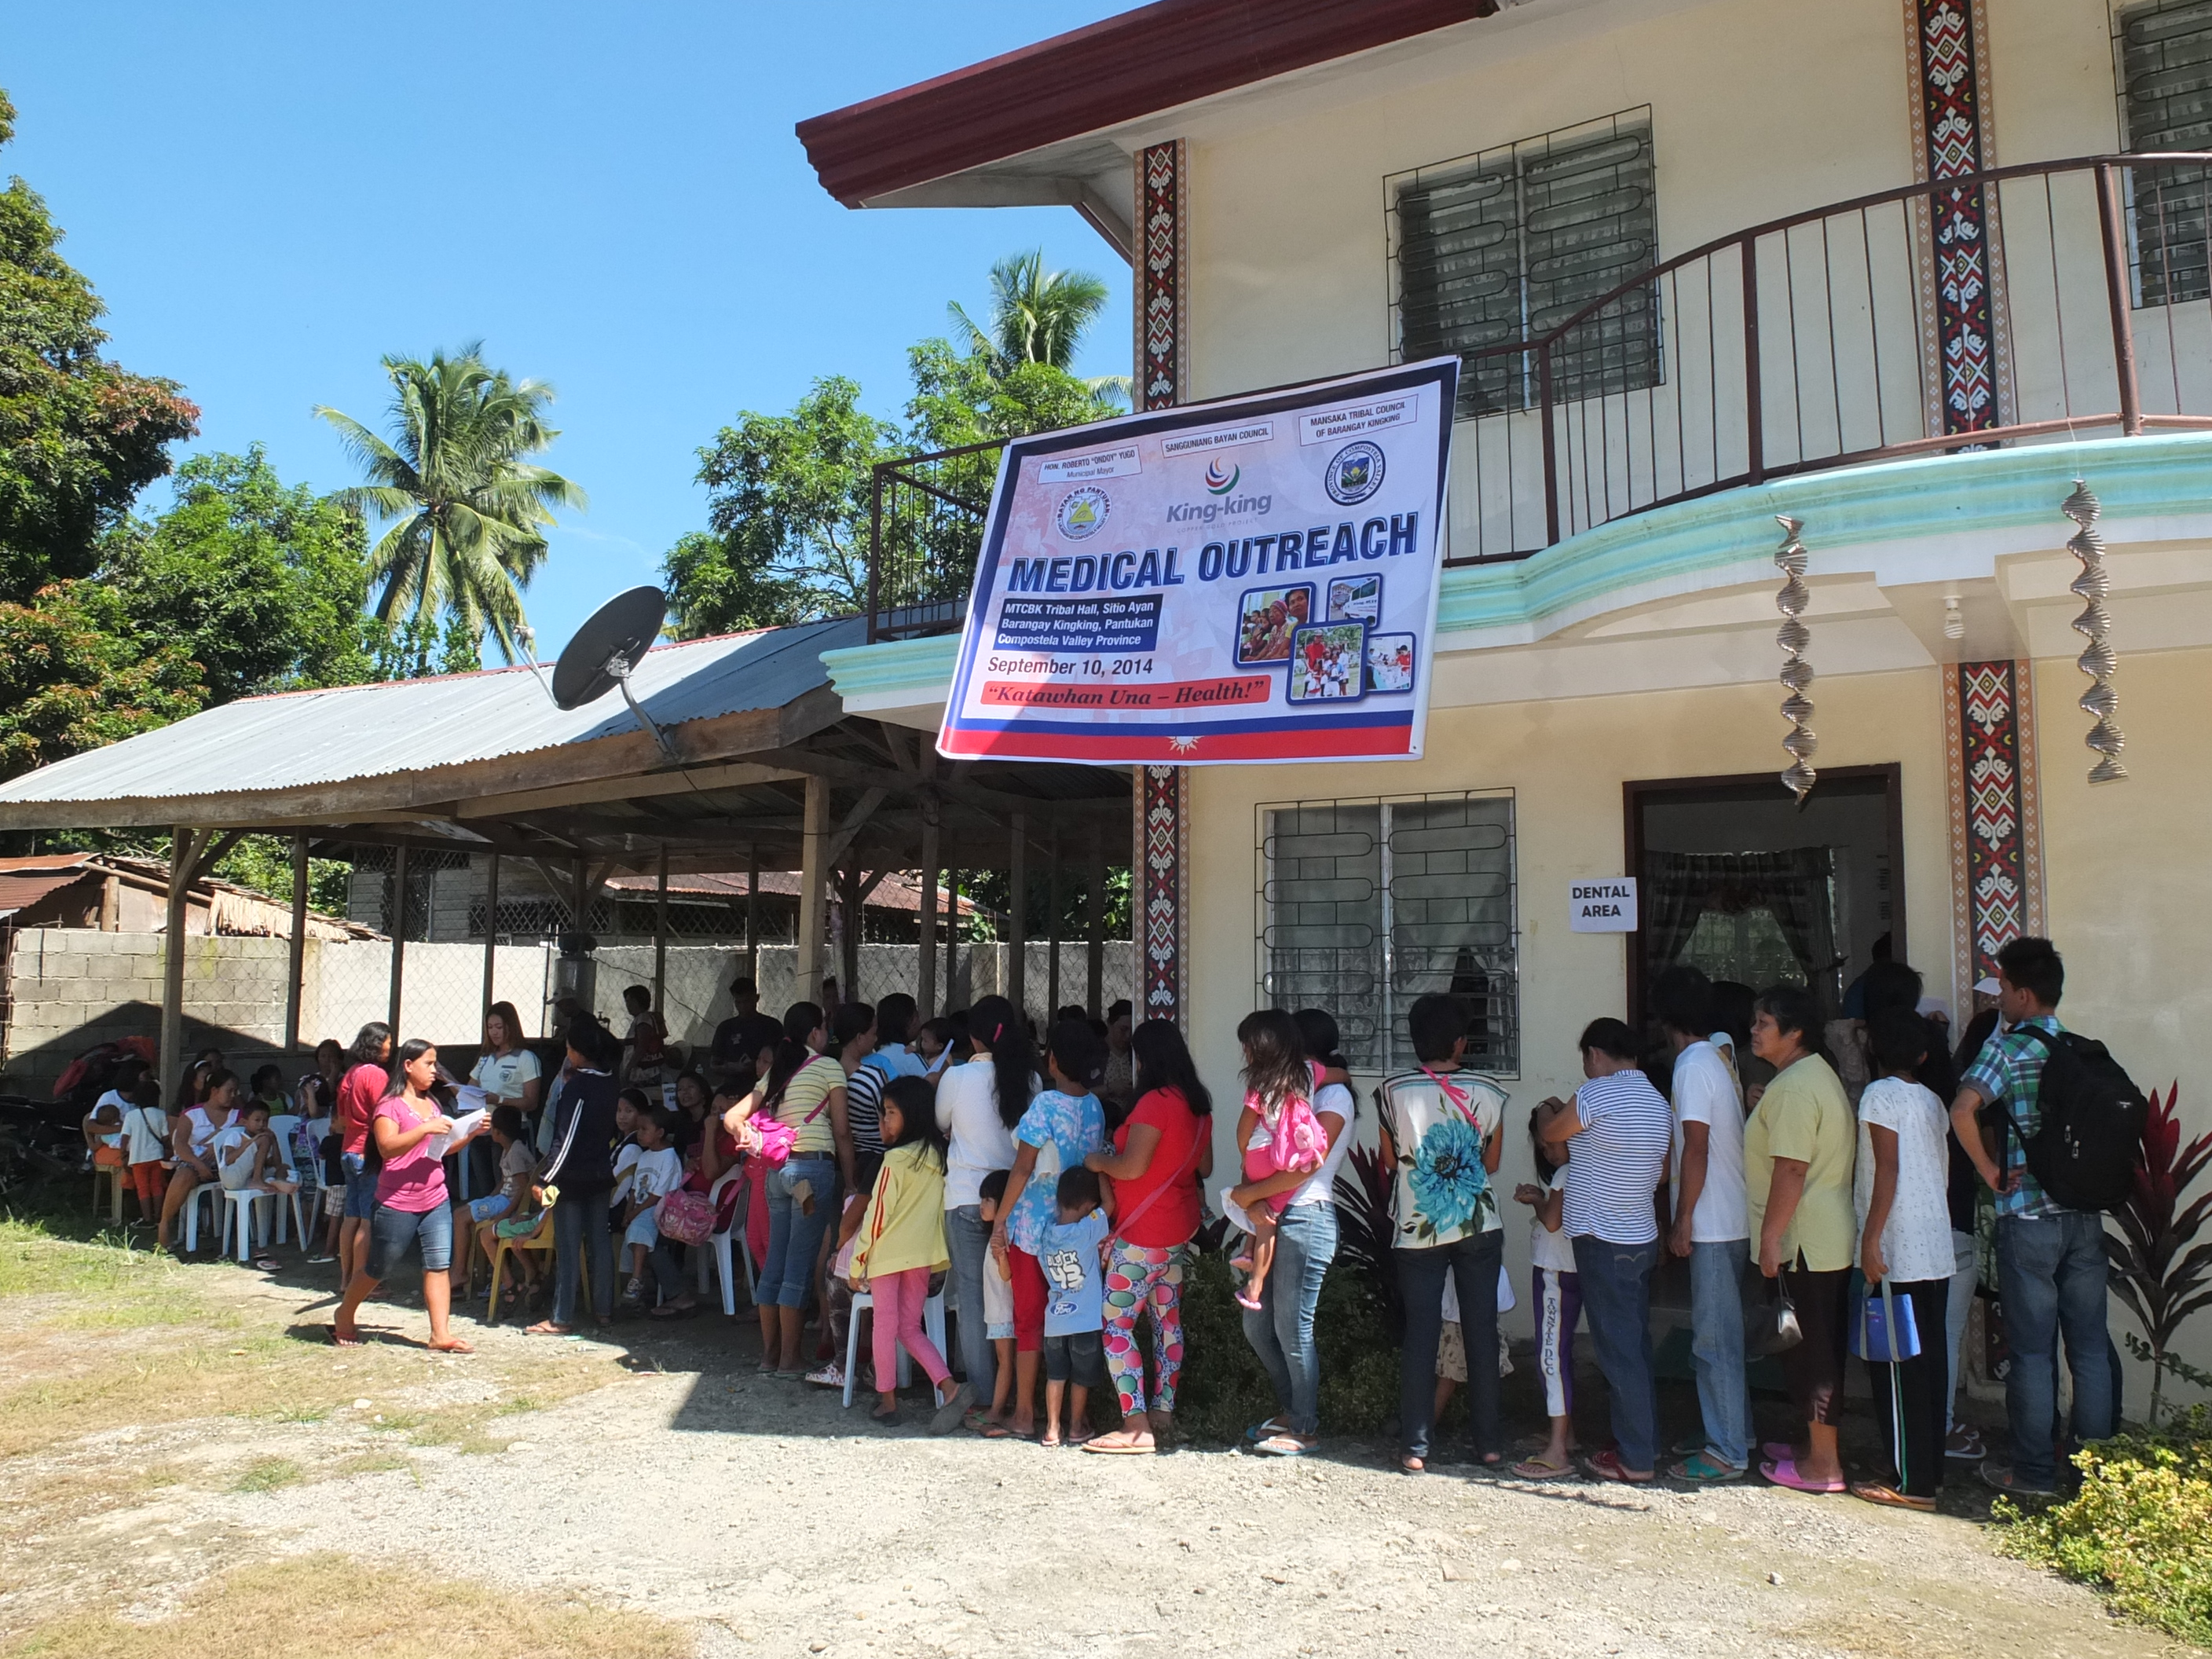 The King-king Copper-Gold Project (KCGP), in partnership with the local government unit and the Mansaka tribal council, conducted a free medical clinic for the indigenous people on September 10, 2014 at the Mansaka Tribal Council hall of Brgy Kingking (MTCBK) in Sitio Ayan, Brgy. Kingking, Pantukan, Compostela Valley in Mindanao.